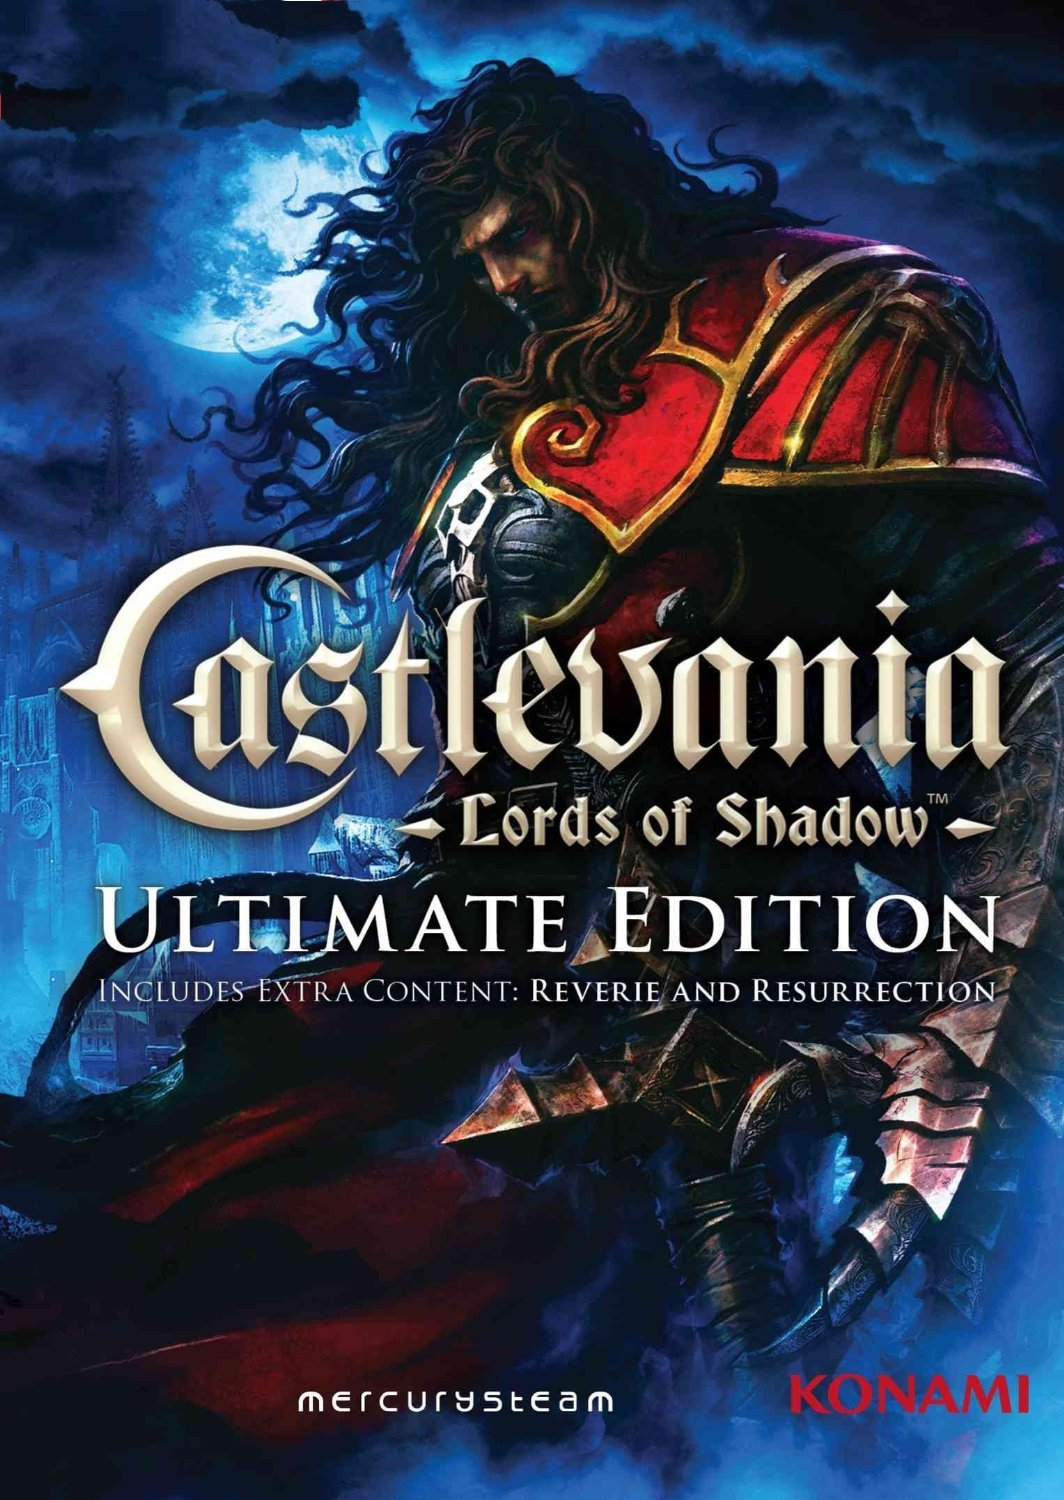 Castlevania: Lords of Shadow - Ultimate Edition (PC) Review 3